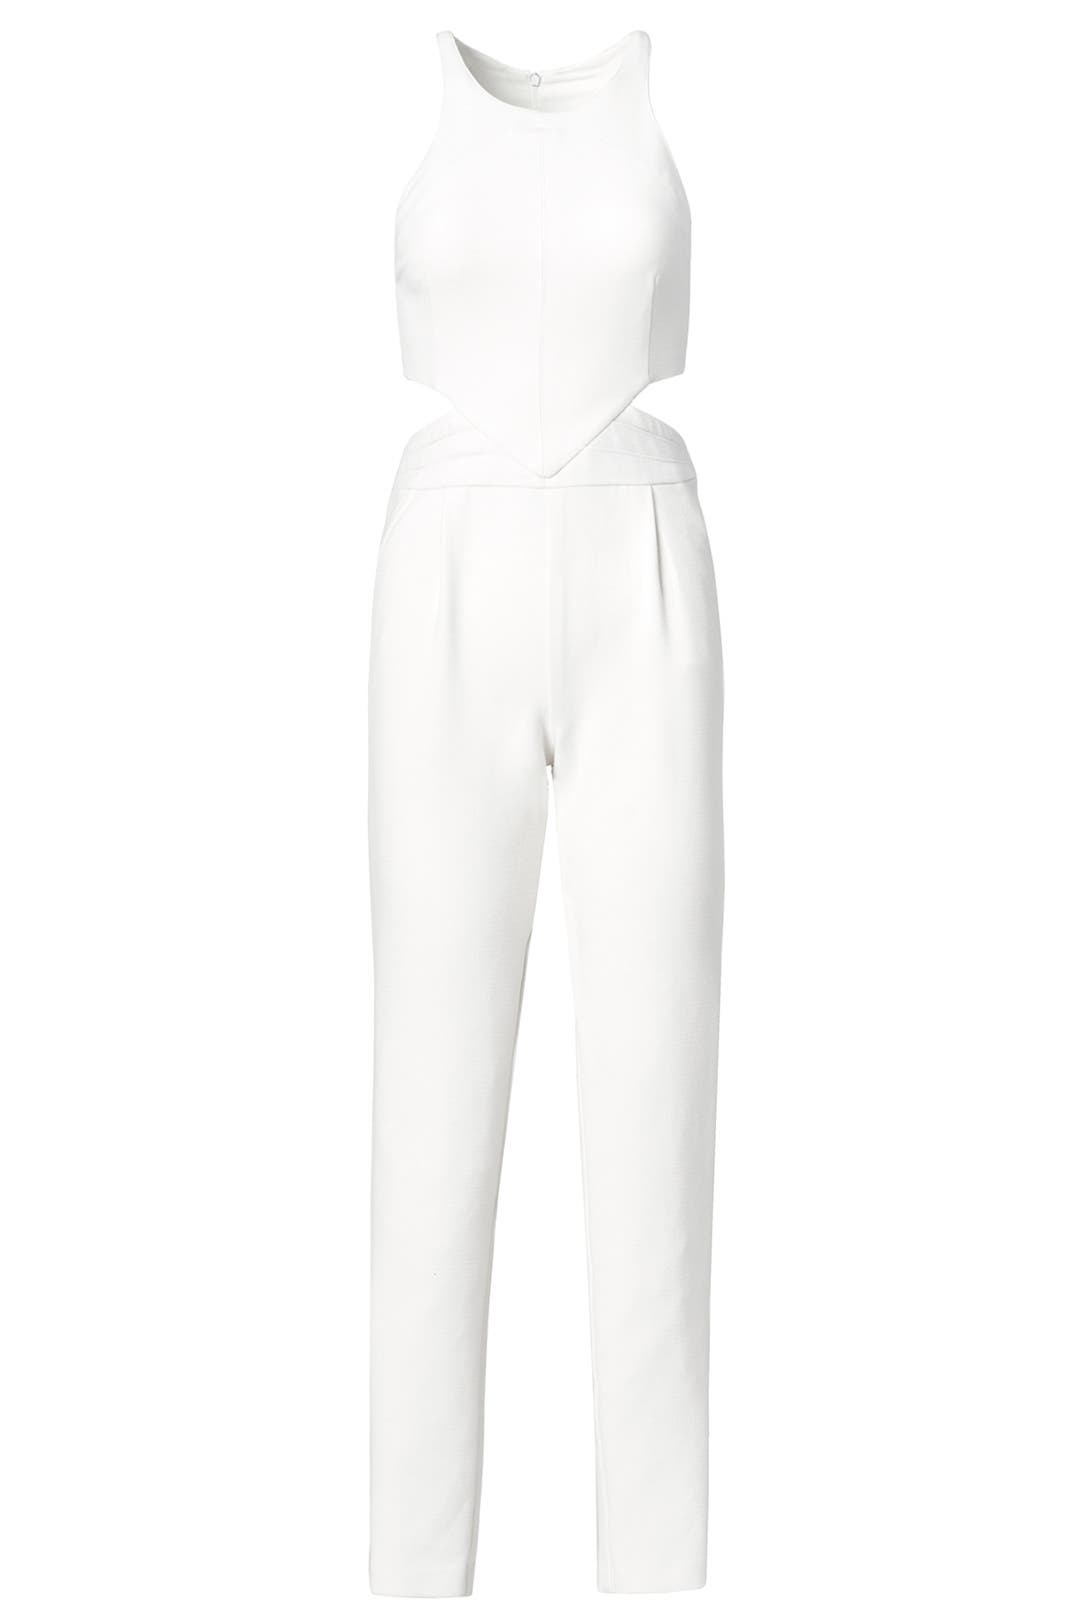 Silver pearl marisol white lace 1 - Bright Side Jumpsuit By Hunter Bell